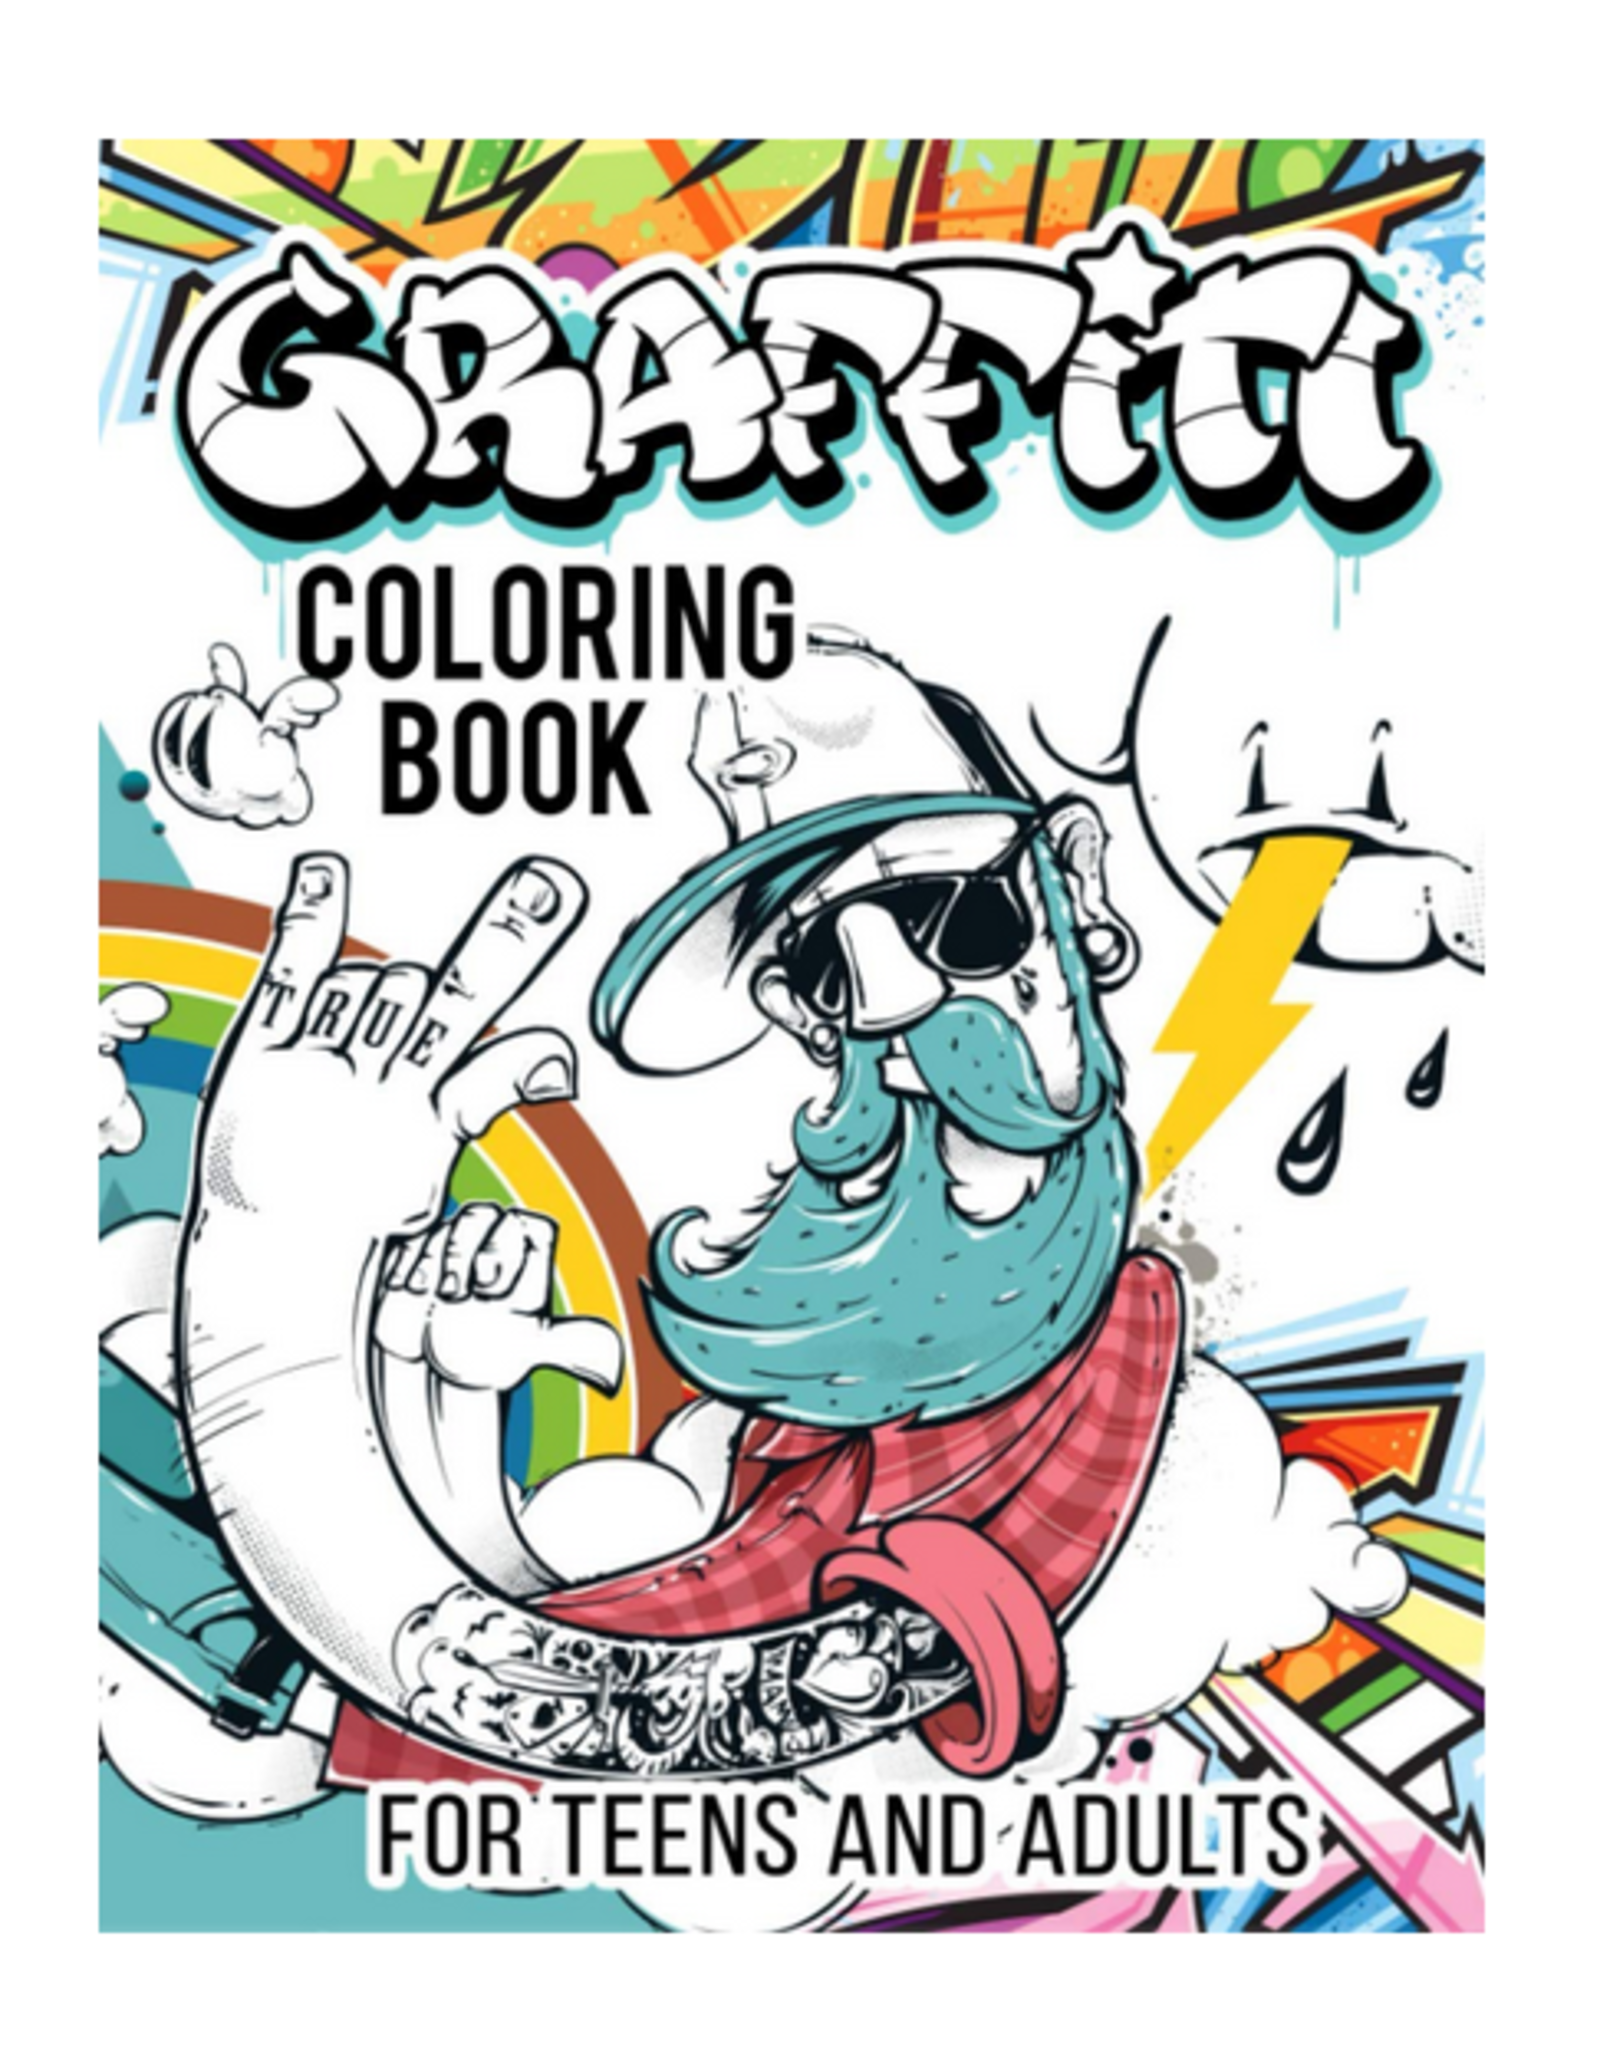 Lifestyle Graffiti Press Colouring Book for Teens & Adults, Graffiti